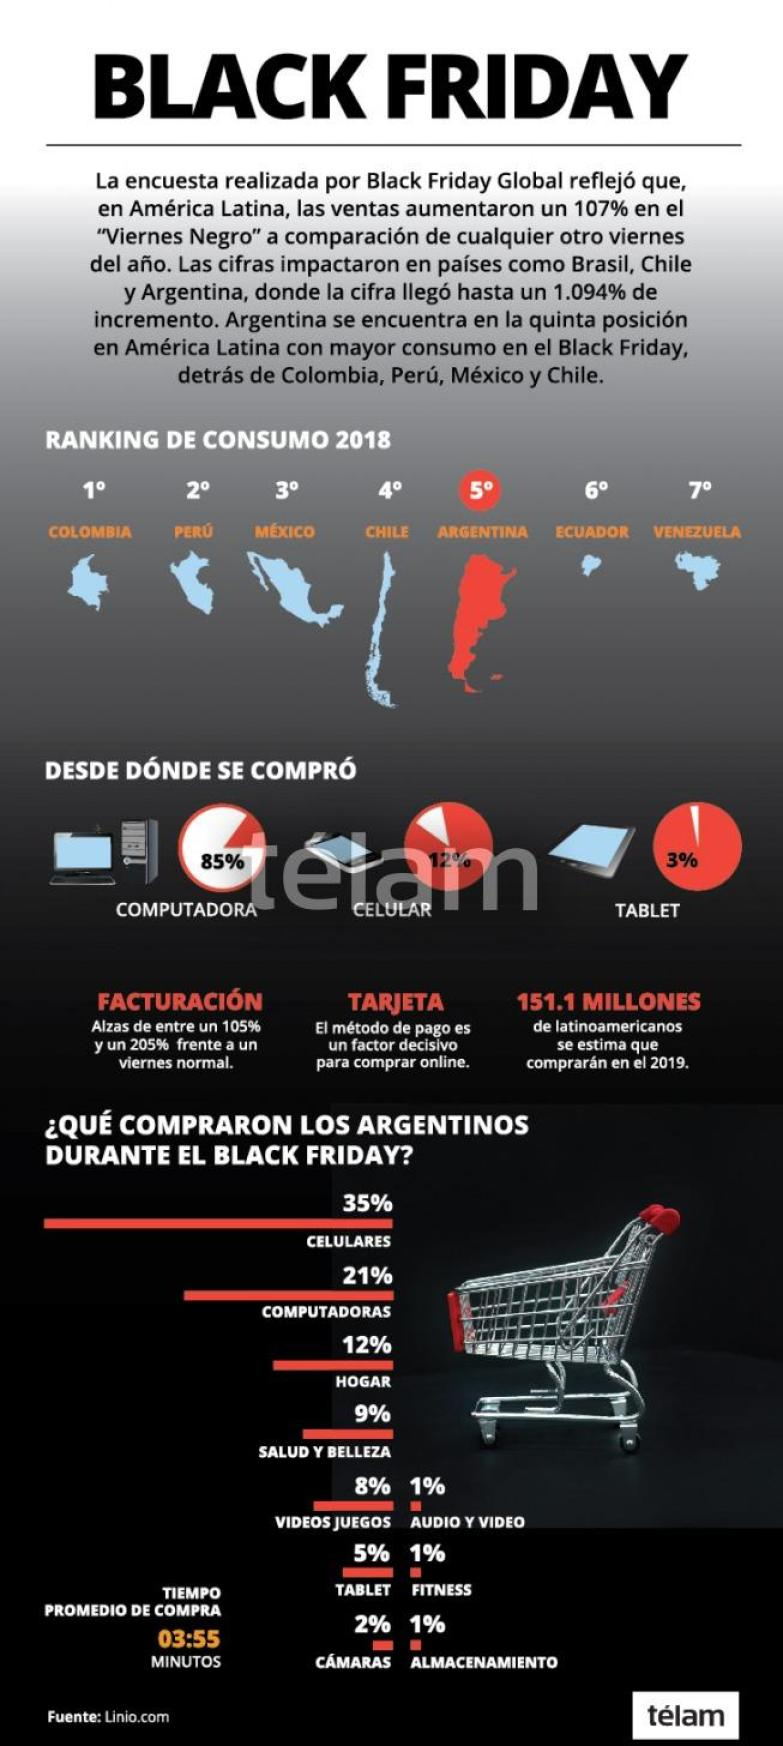 Black Friday 2018 en Latinoamérica #infografia #infographic #marketing